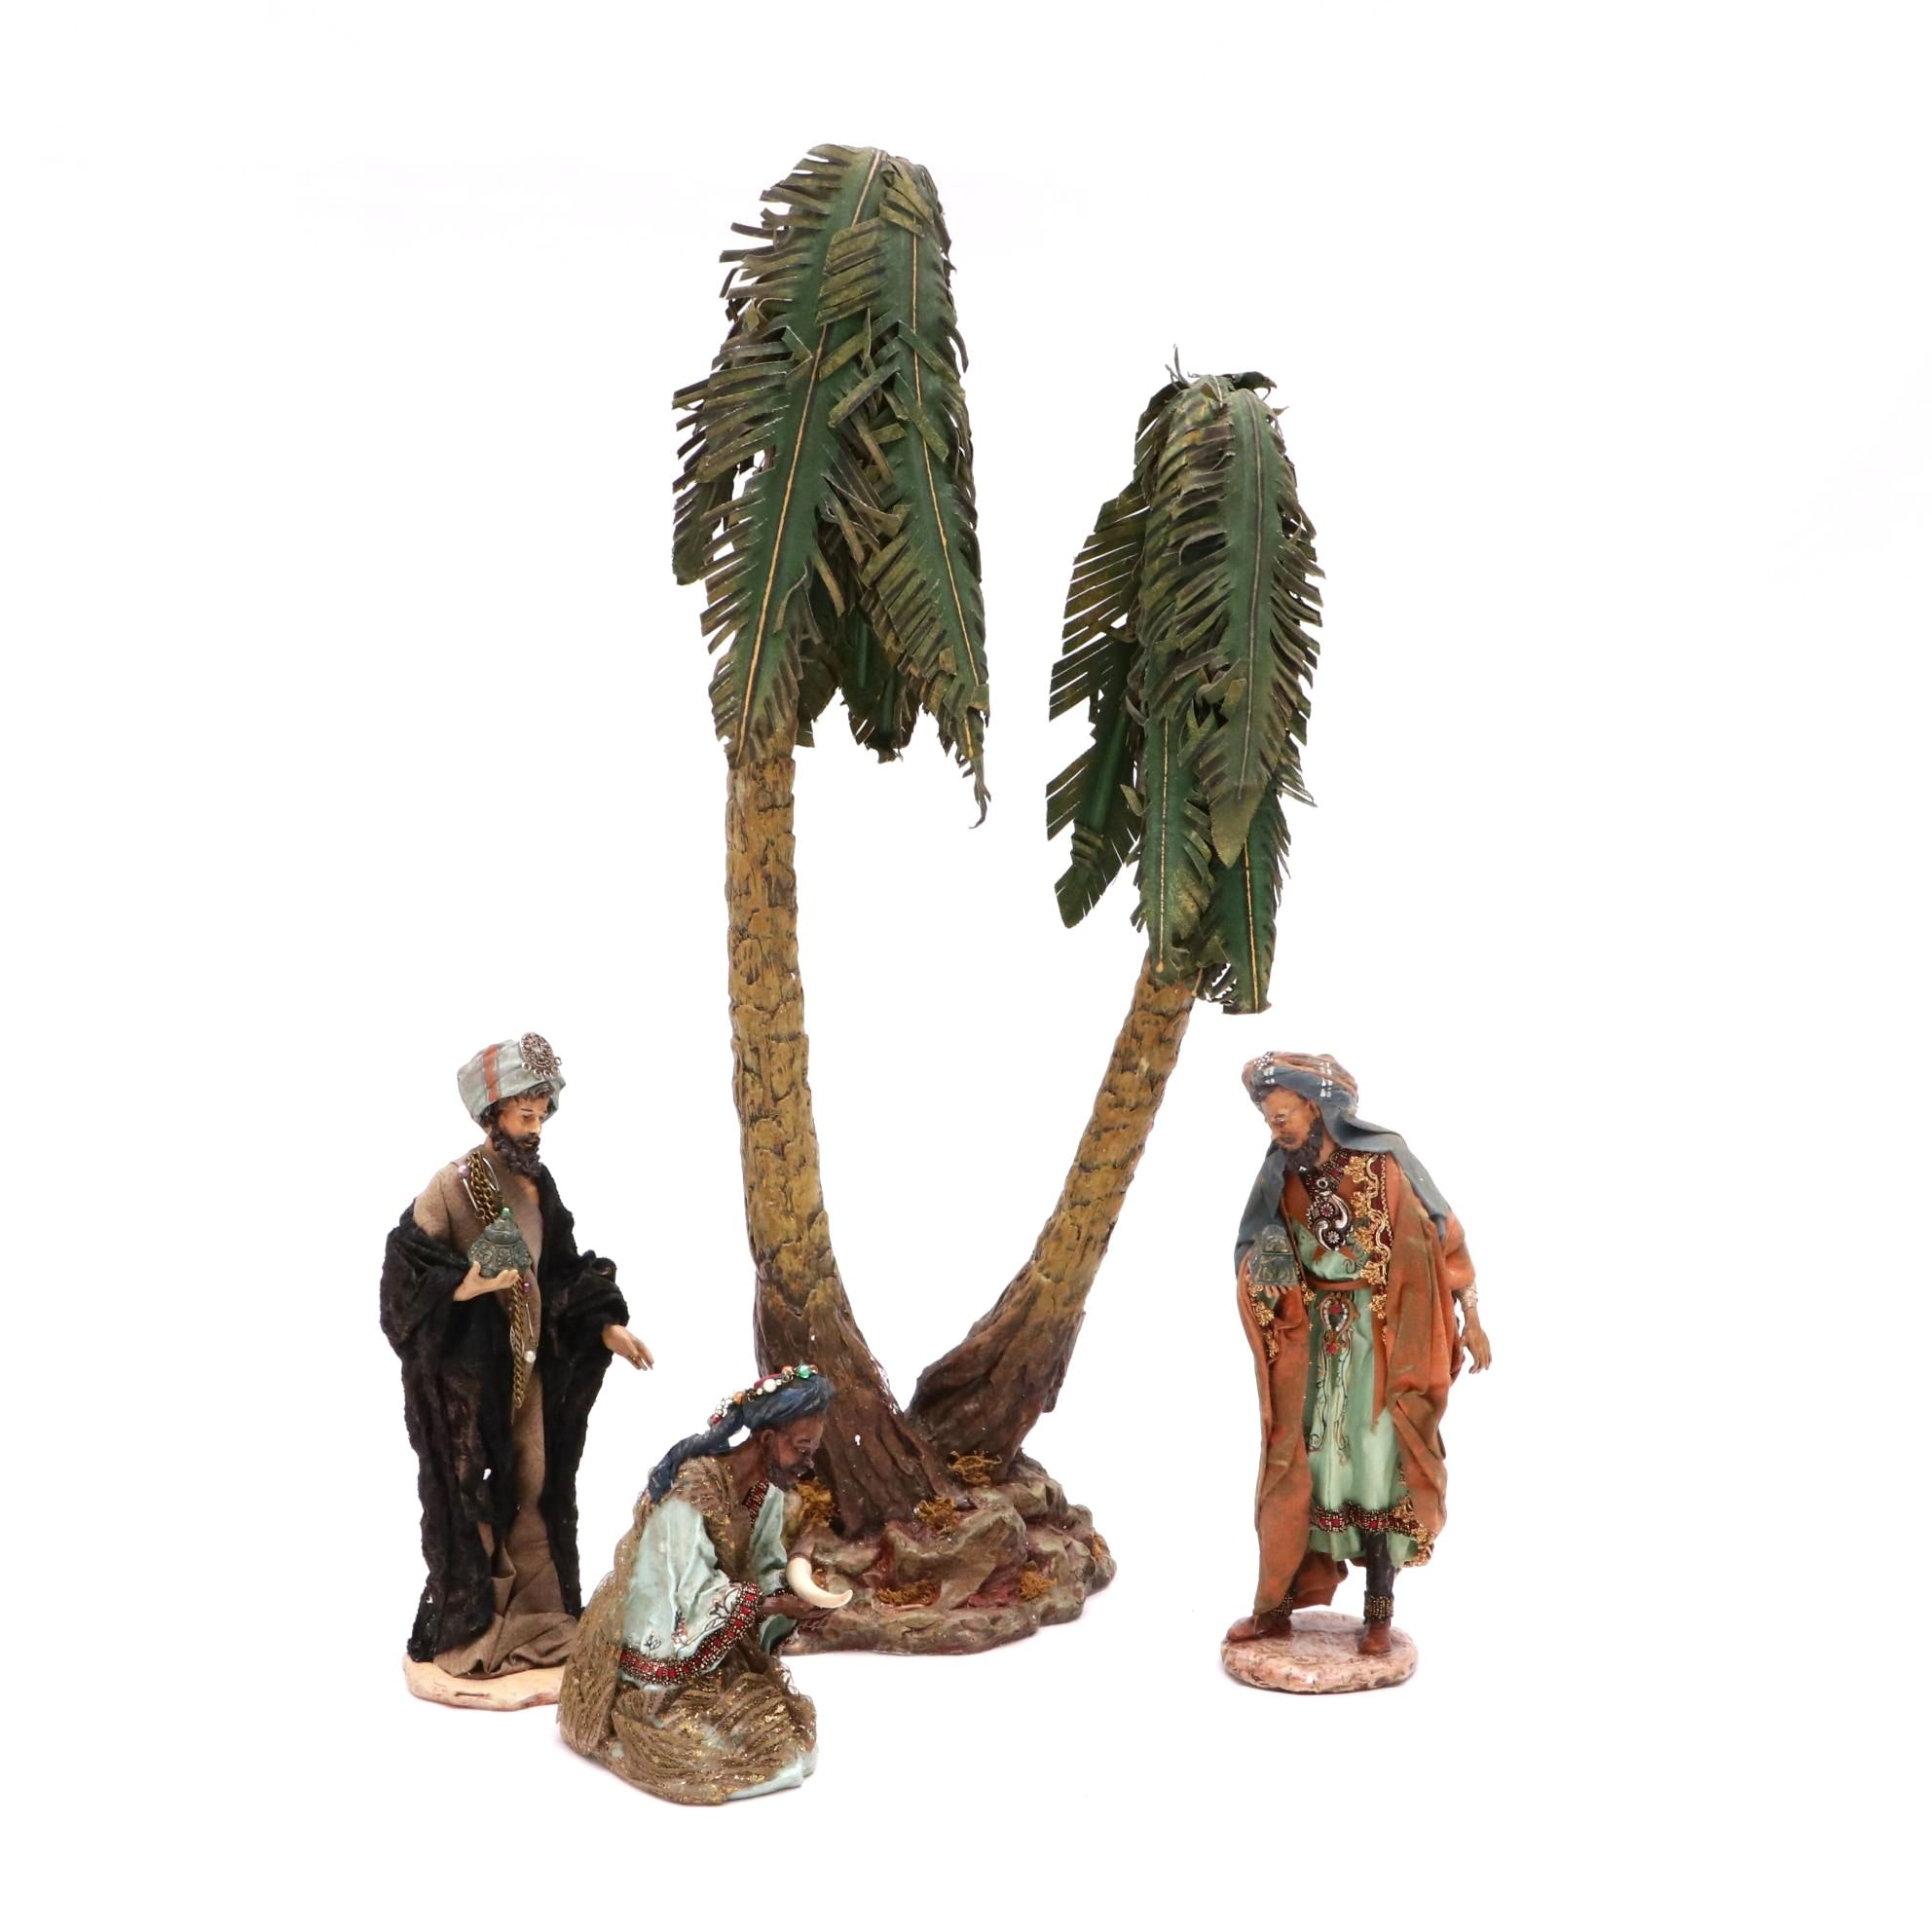 Department 56 Nativity Three Kings and Palm Trees Figures